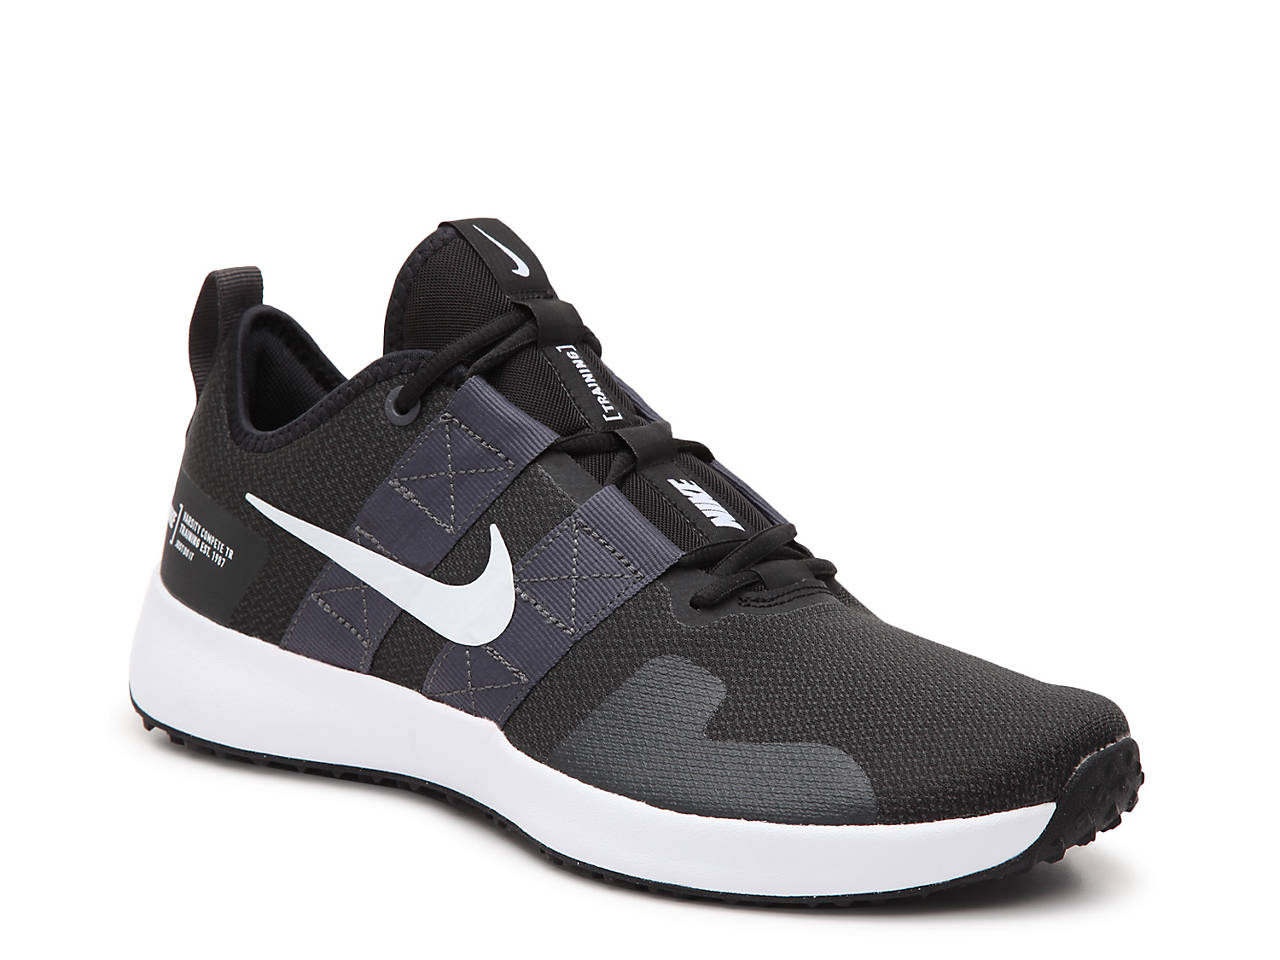 timeless design 46338 0d22b Nike Varsity Compete 4E Training Shoe - Men's Men's Shoes | DSW